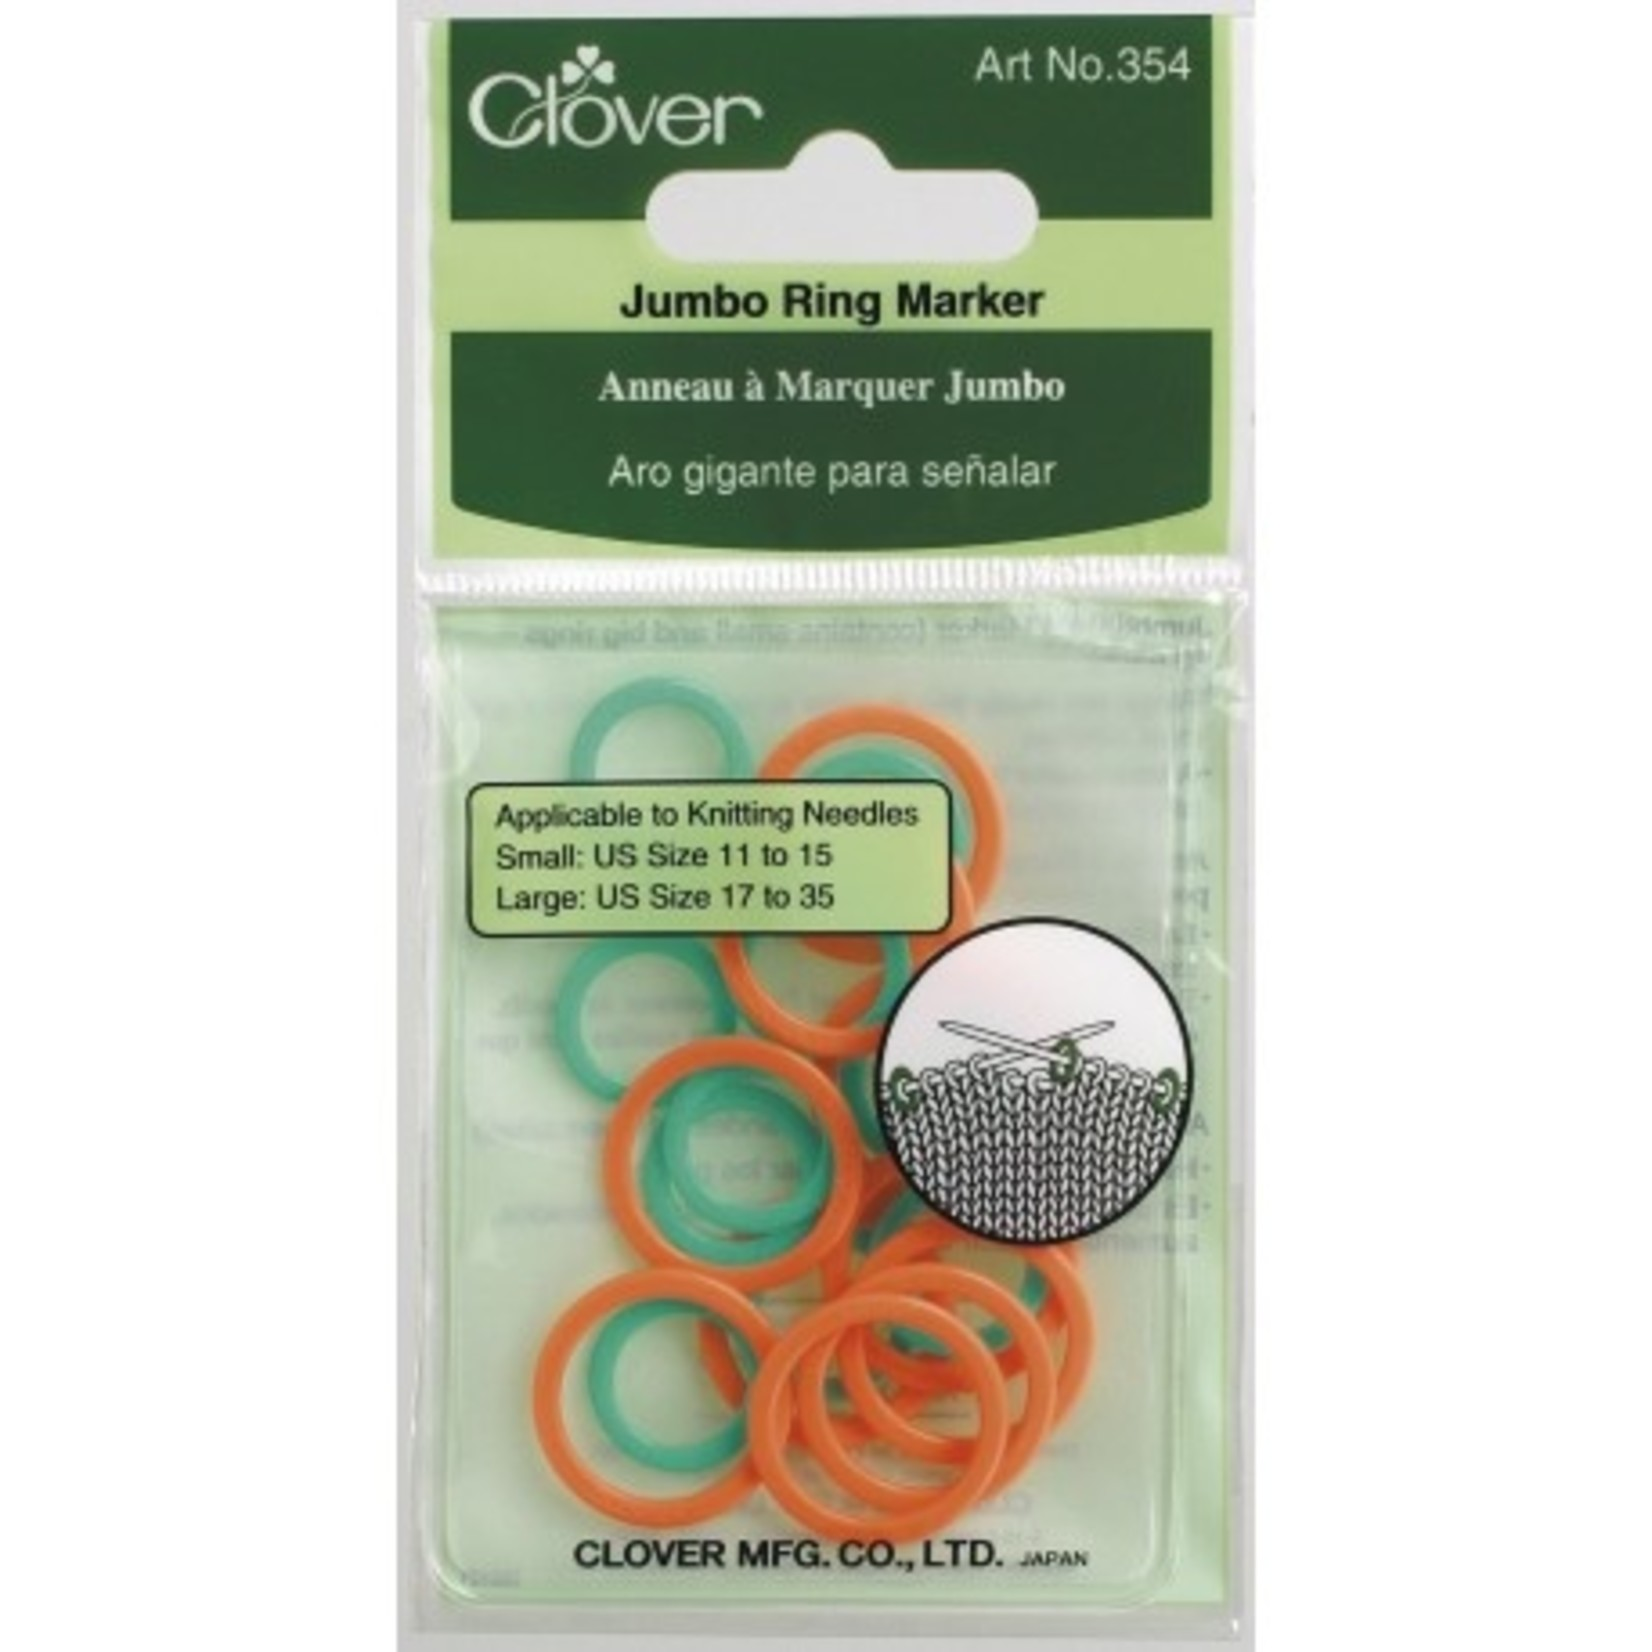 Clover Clover Jumbo Stitch Ring Markers 354